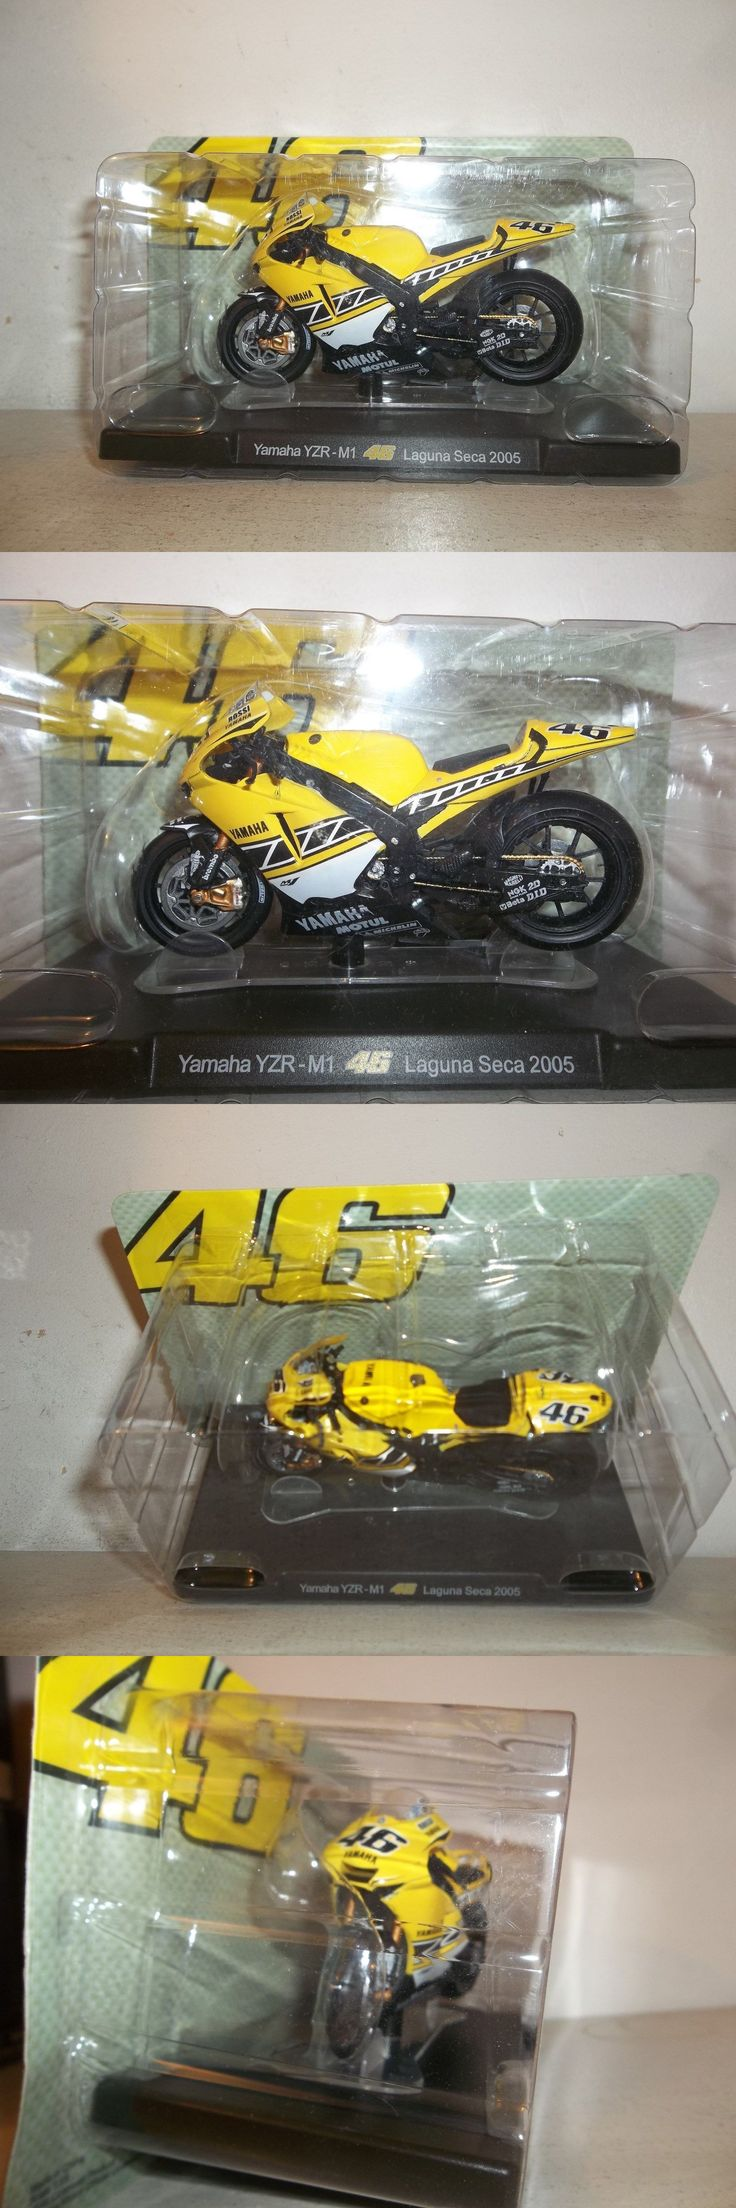 Contemporary Manufacture 45348: New 1 18 Scale #46 Valentino Rossi 2005 Laguna Seca Team Yamaha Yzr-M1 Moto Gp -> BUY IT NOW ONLY: $34.99 on eBay!